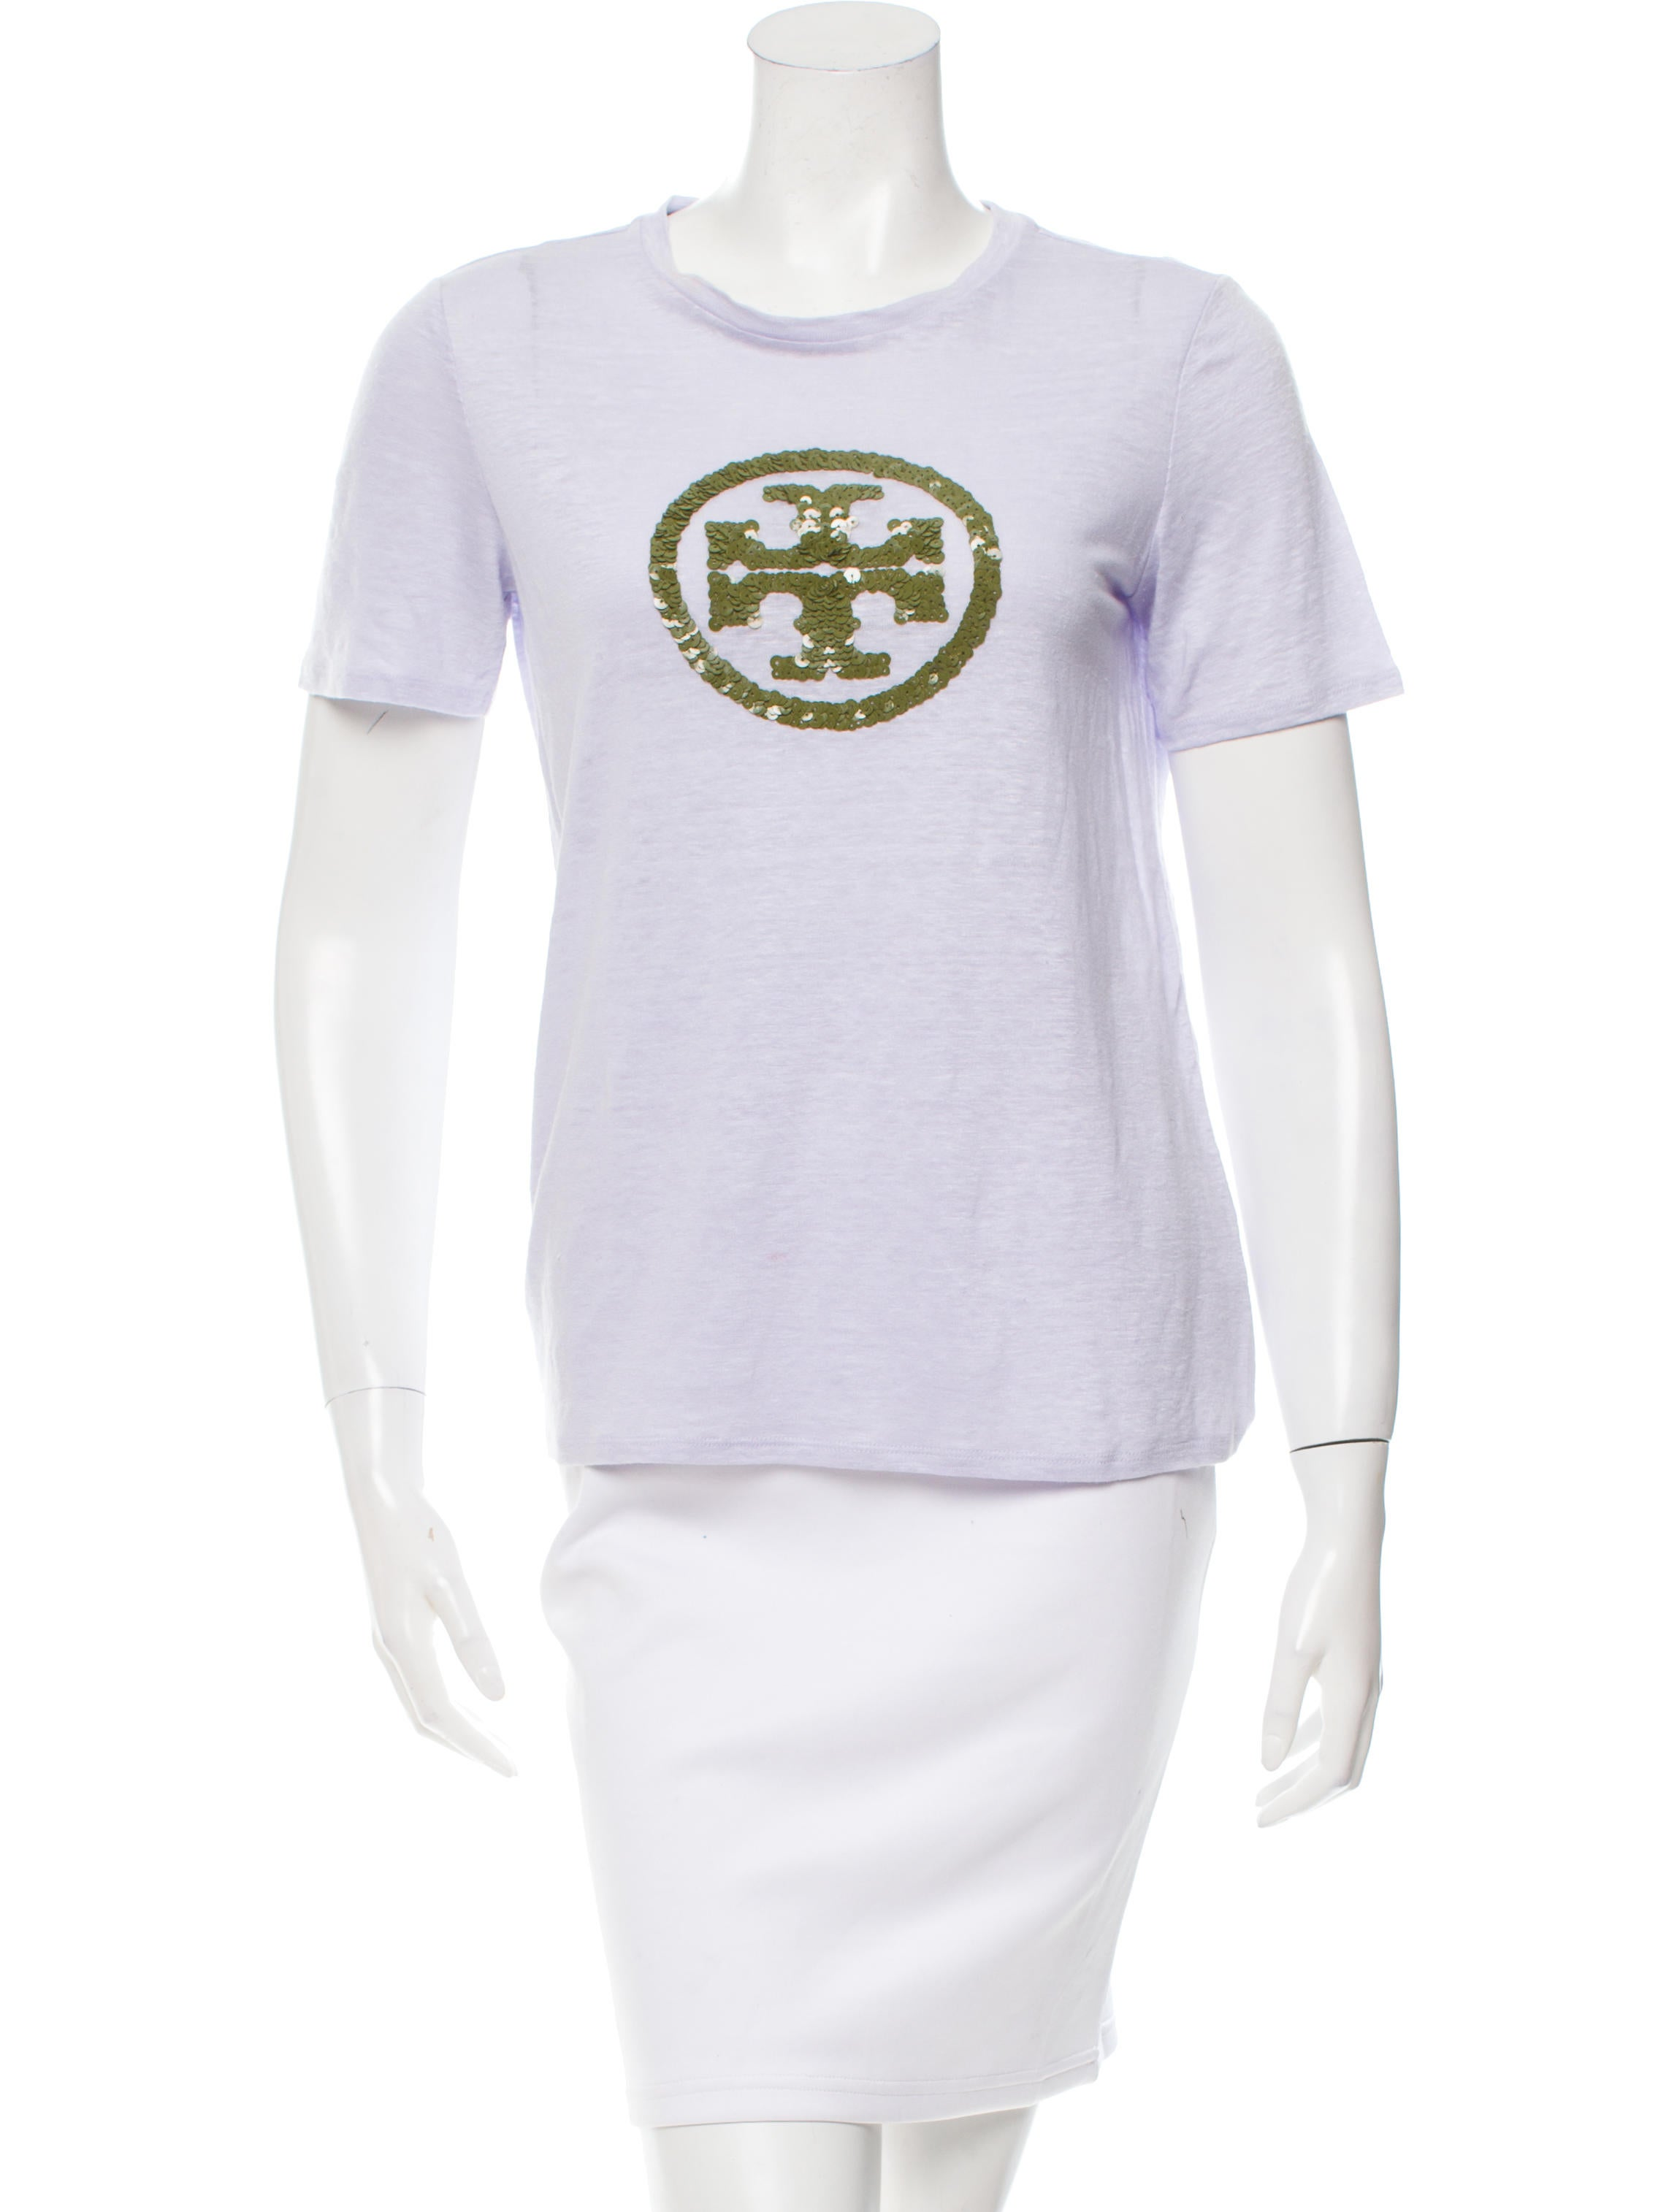 Tory burch sequined short sleeve t shirt clothing for Tory burch t shirt